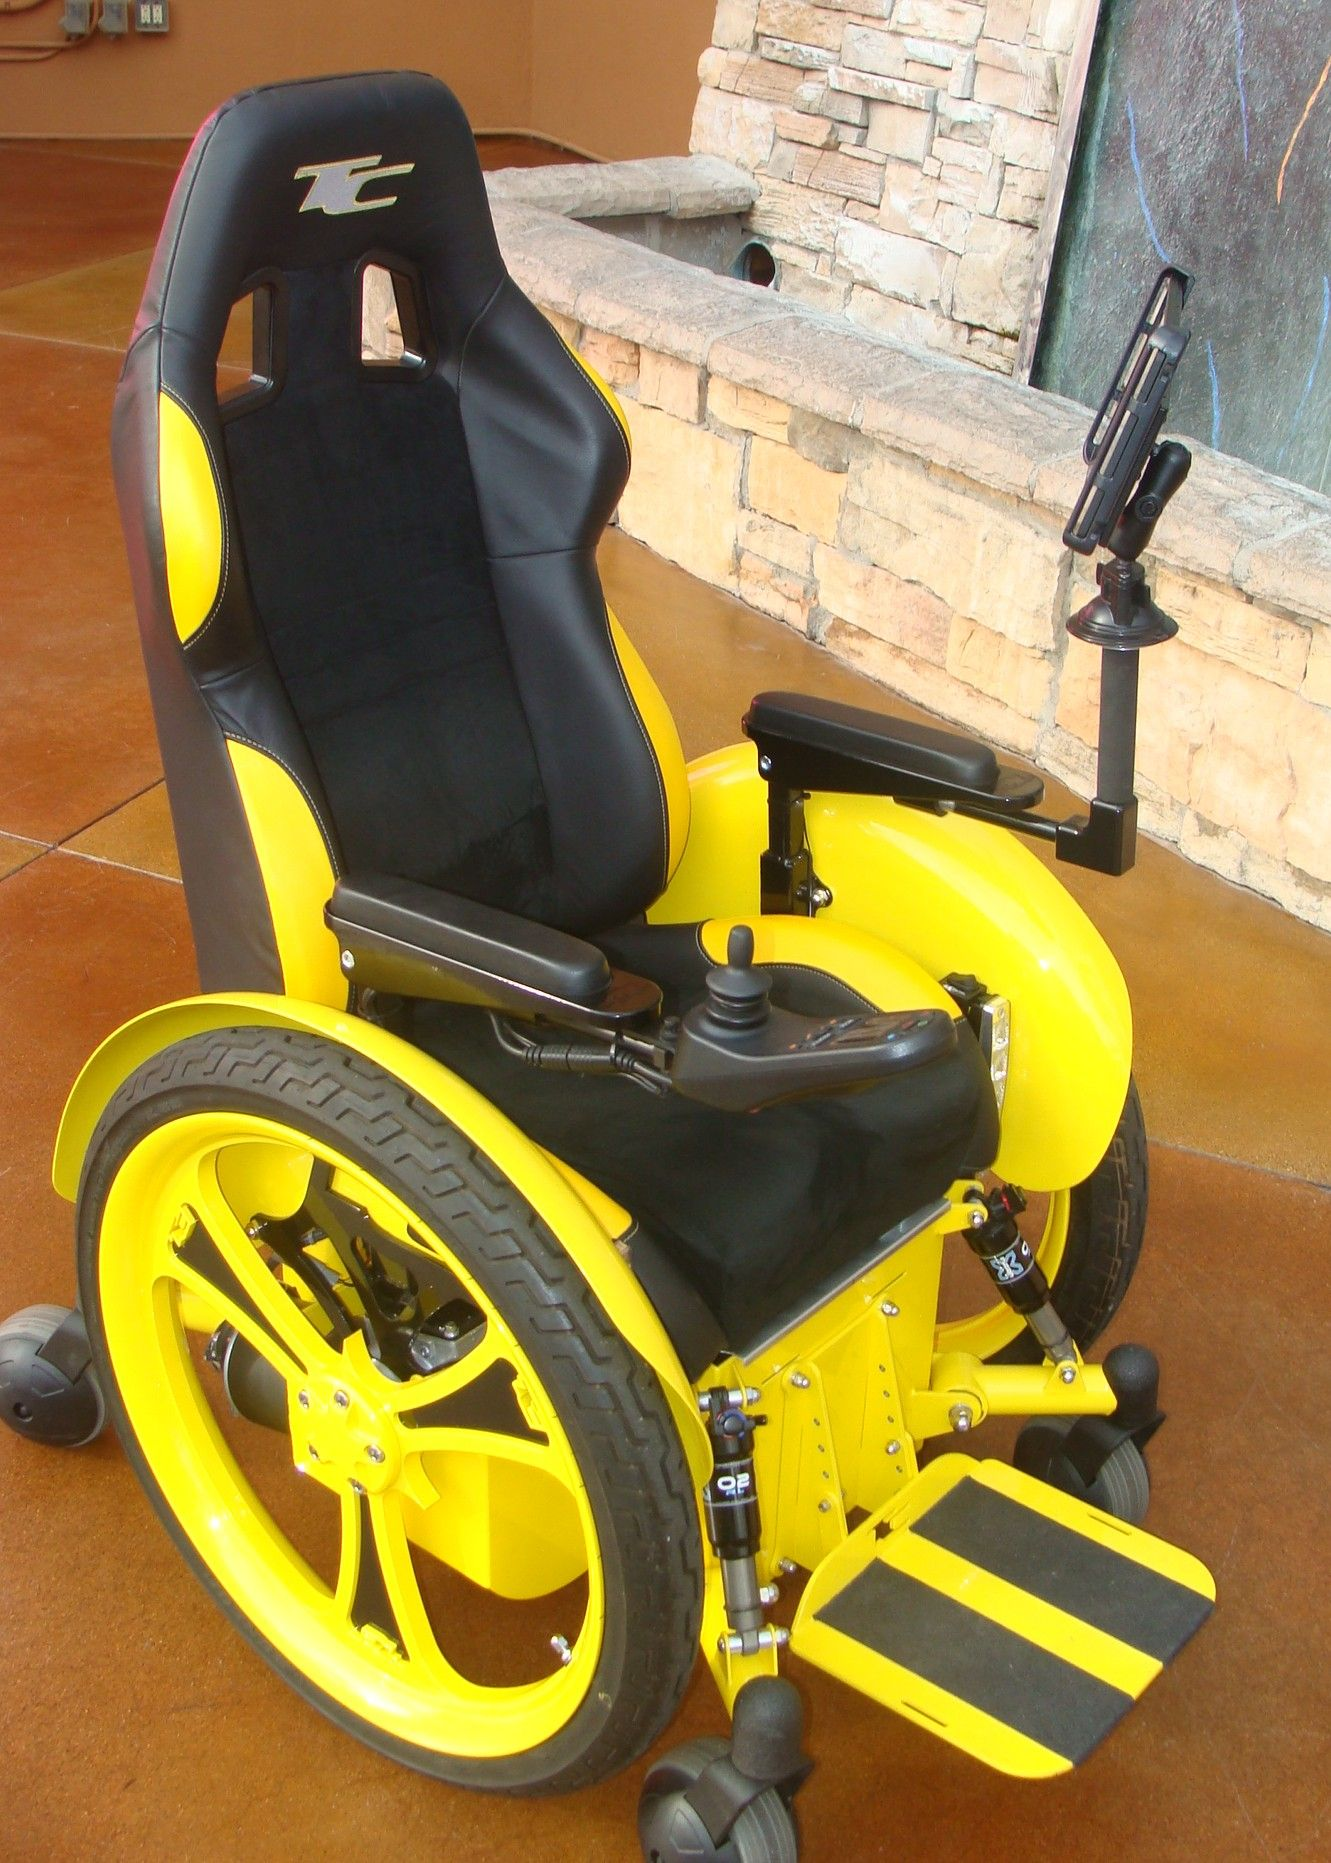 Tank Chair Wheelchair Light Grey Dining Chairs The Speedster See It Believe Do Watch Thousands Of Sci Videos At Spinalpedia Com